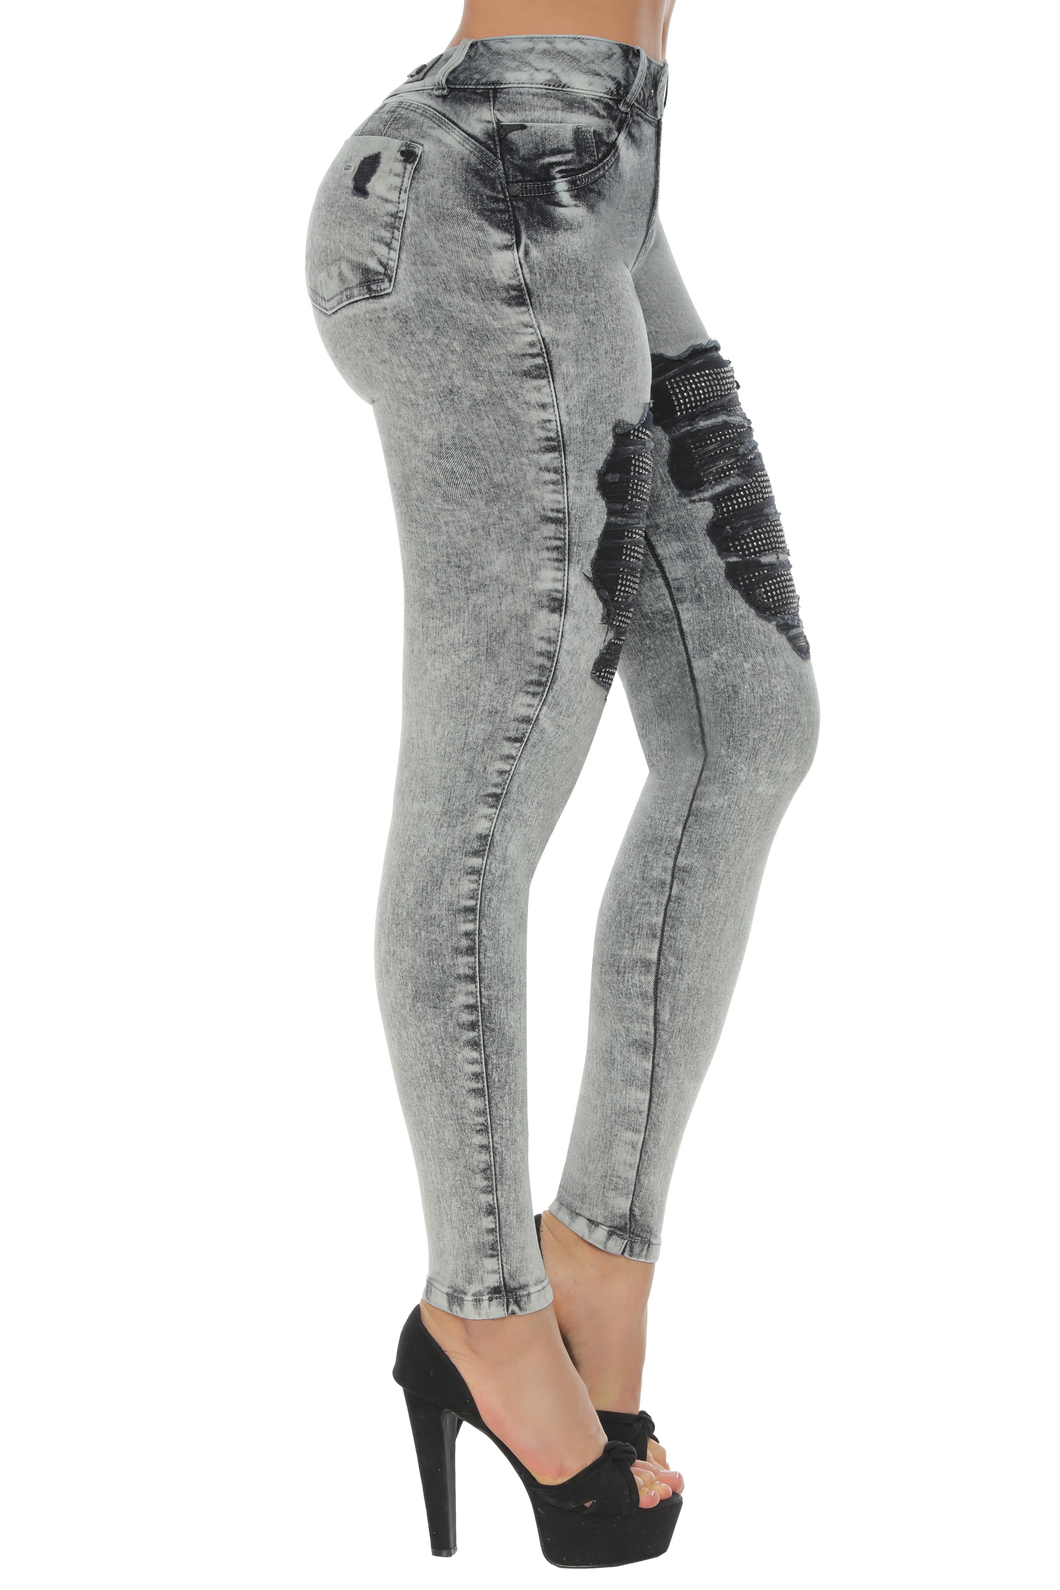 NEVADA Edgy style high rise skinny jeans